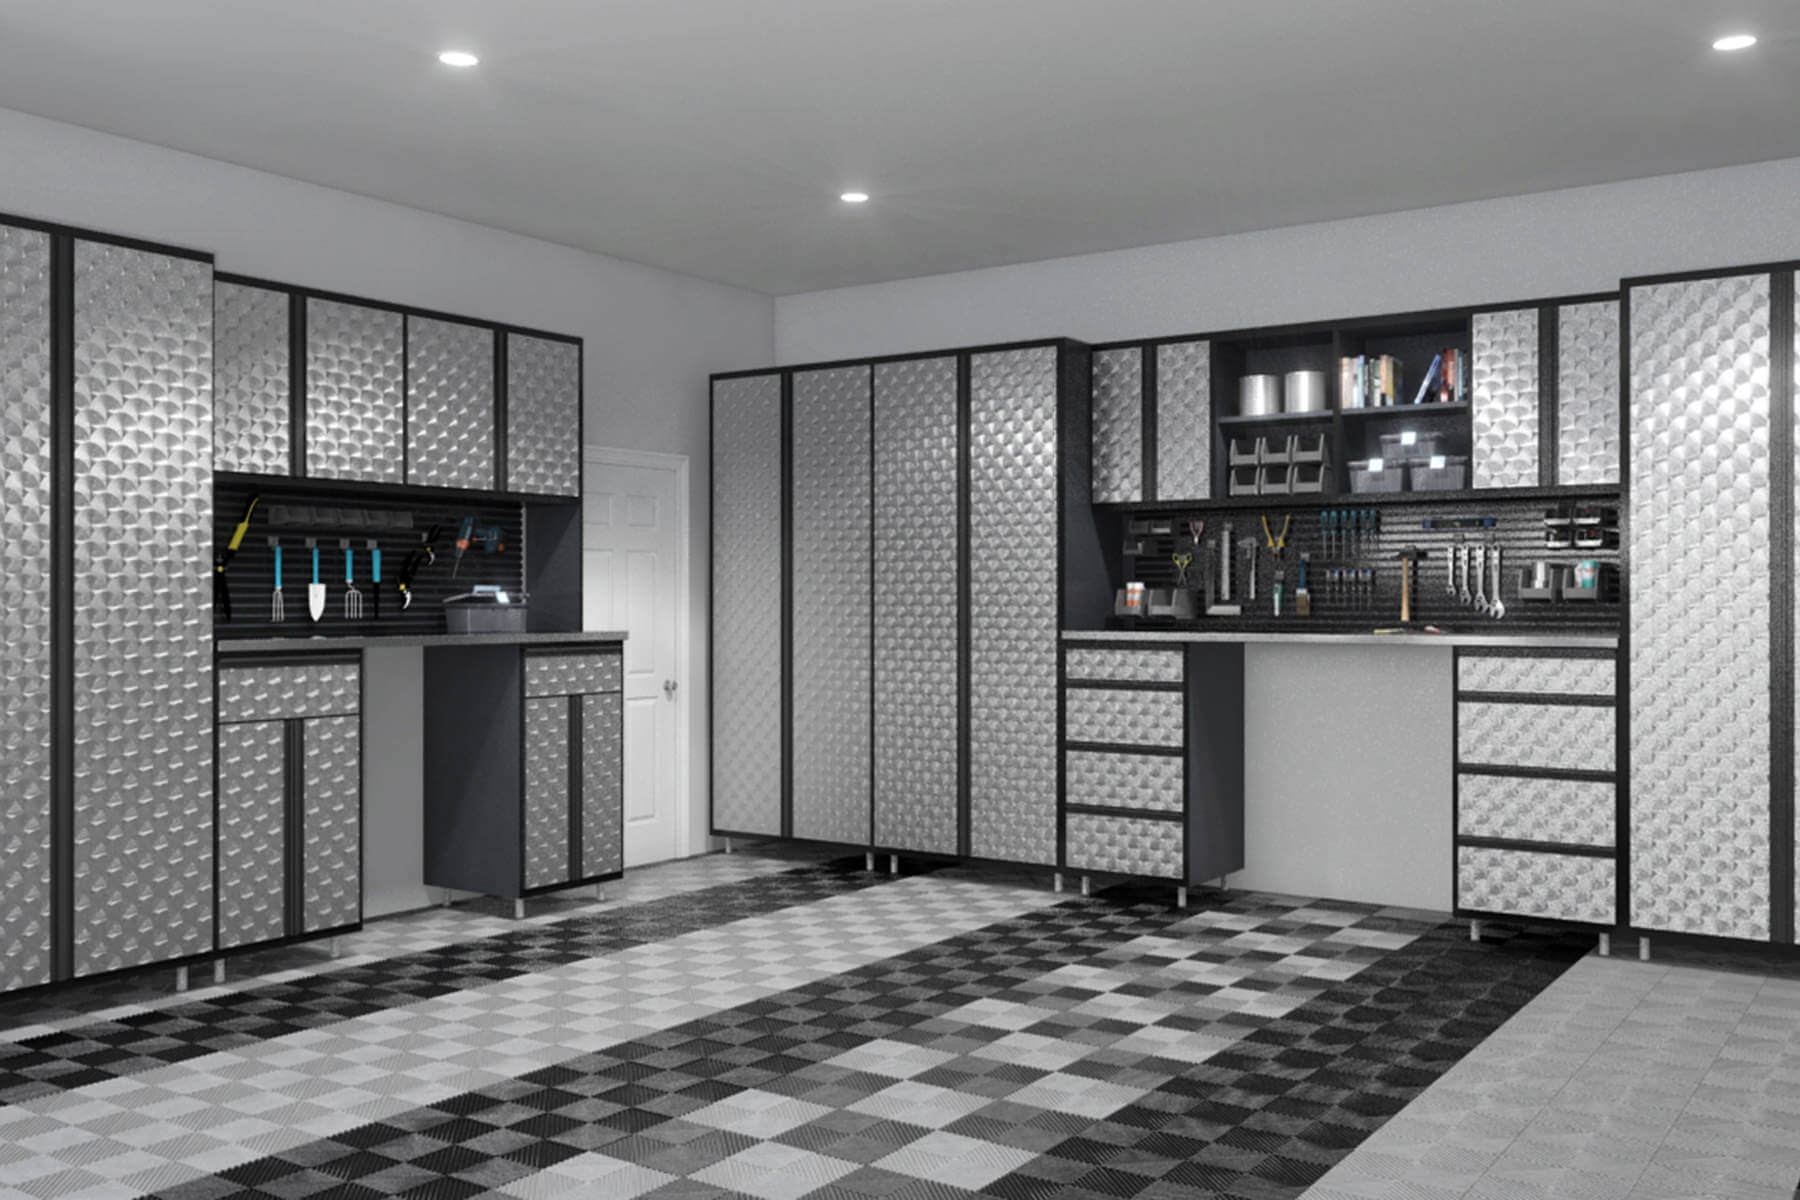 Every inch of this garage screams of masculinity with its running theme of diesel black, platinum ice, and liquid silver from the tall cabinets down to the floors. Vertical storage for the garage tools are easy to spot in all black design.